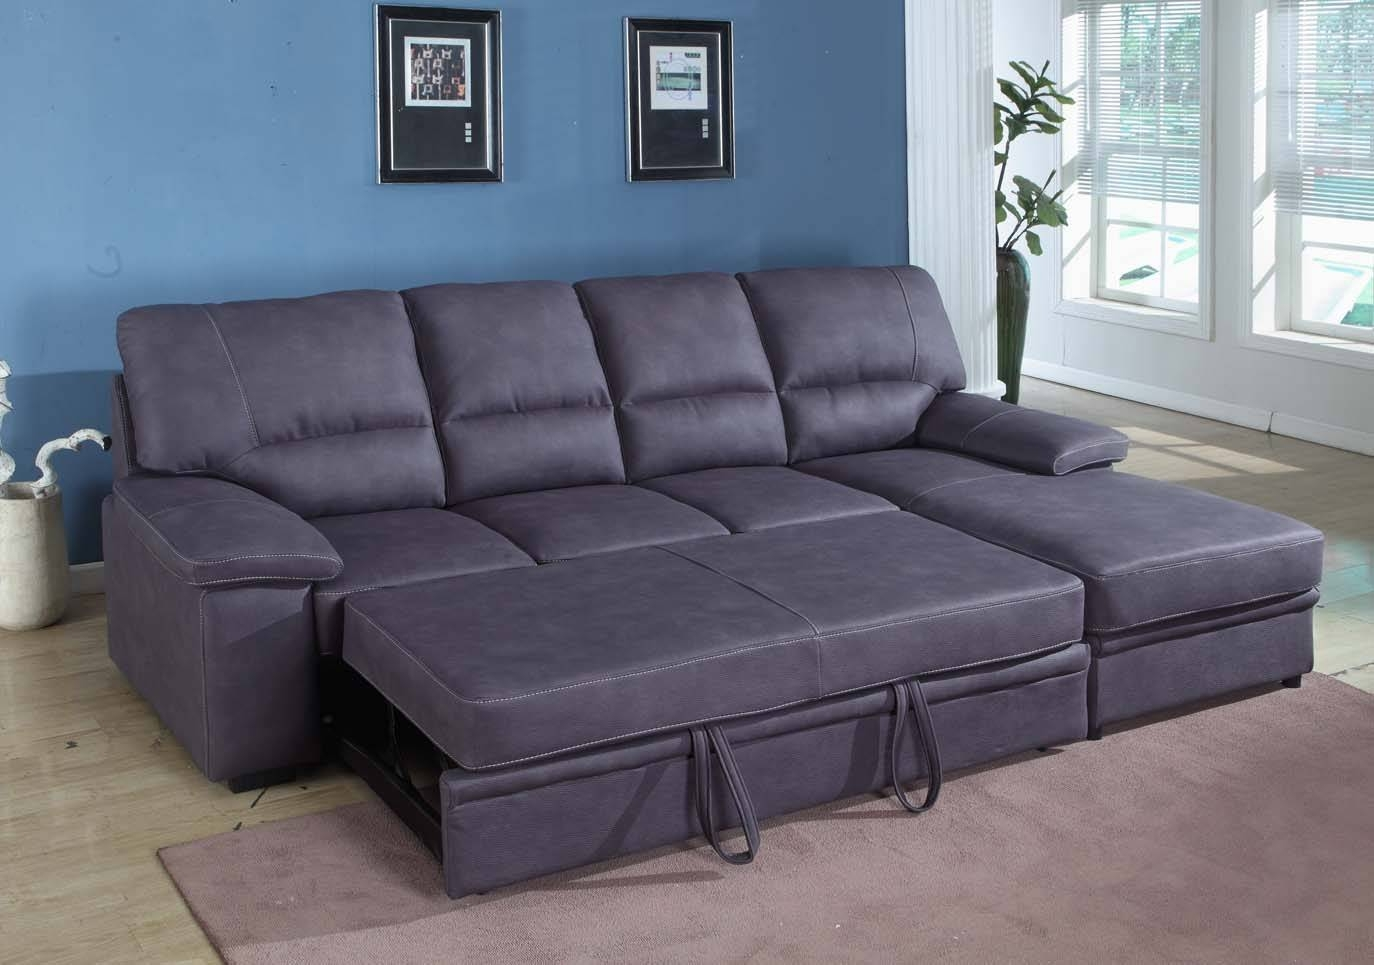 12 Best Collection Of 70 Sleeper Sofa with 70 Sleeper Sofa (Image 6 of 30)